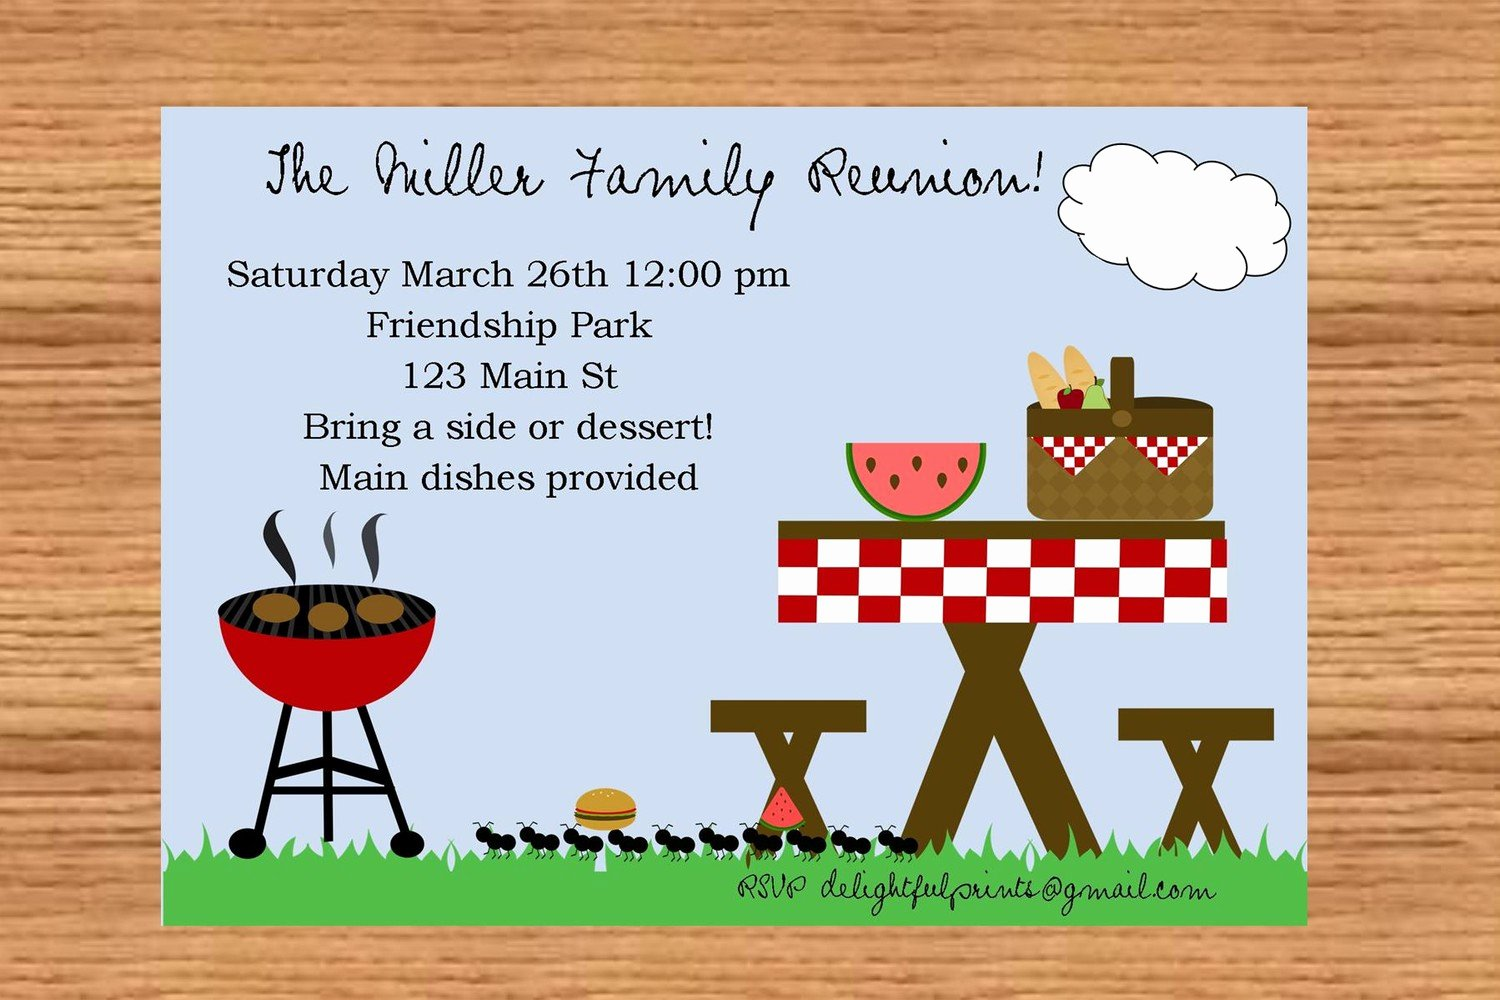 Picnic Flyer Template Free Luxury Pany Picnic Quotes Quotesgram